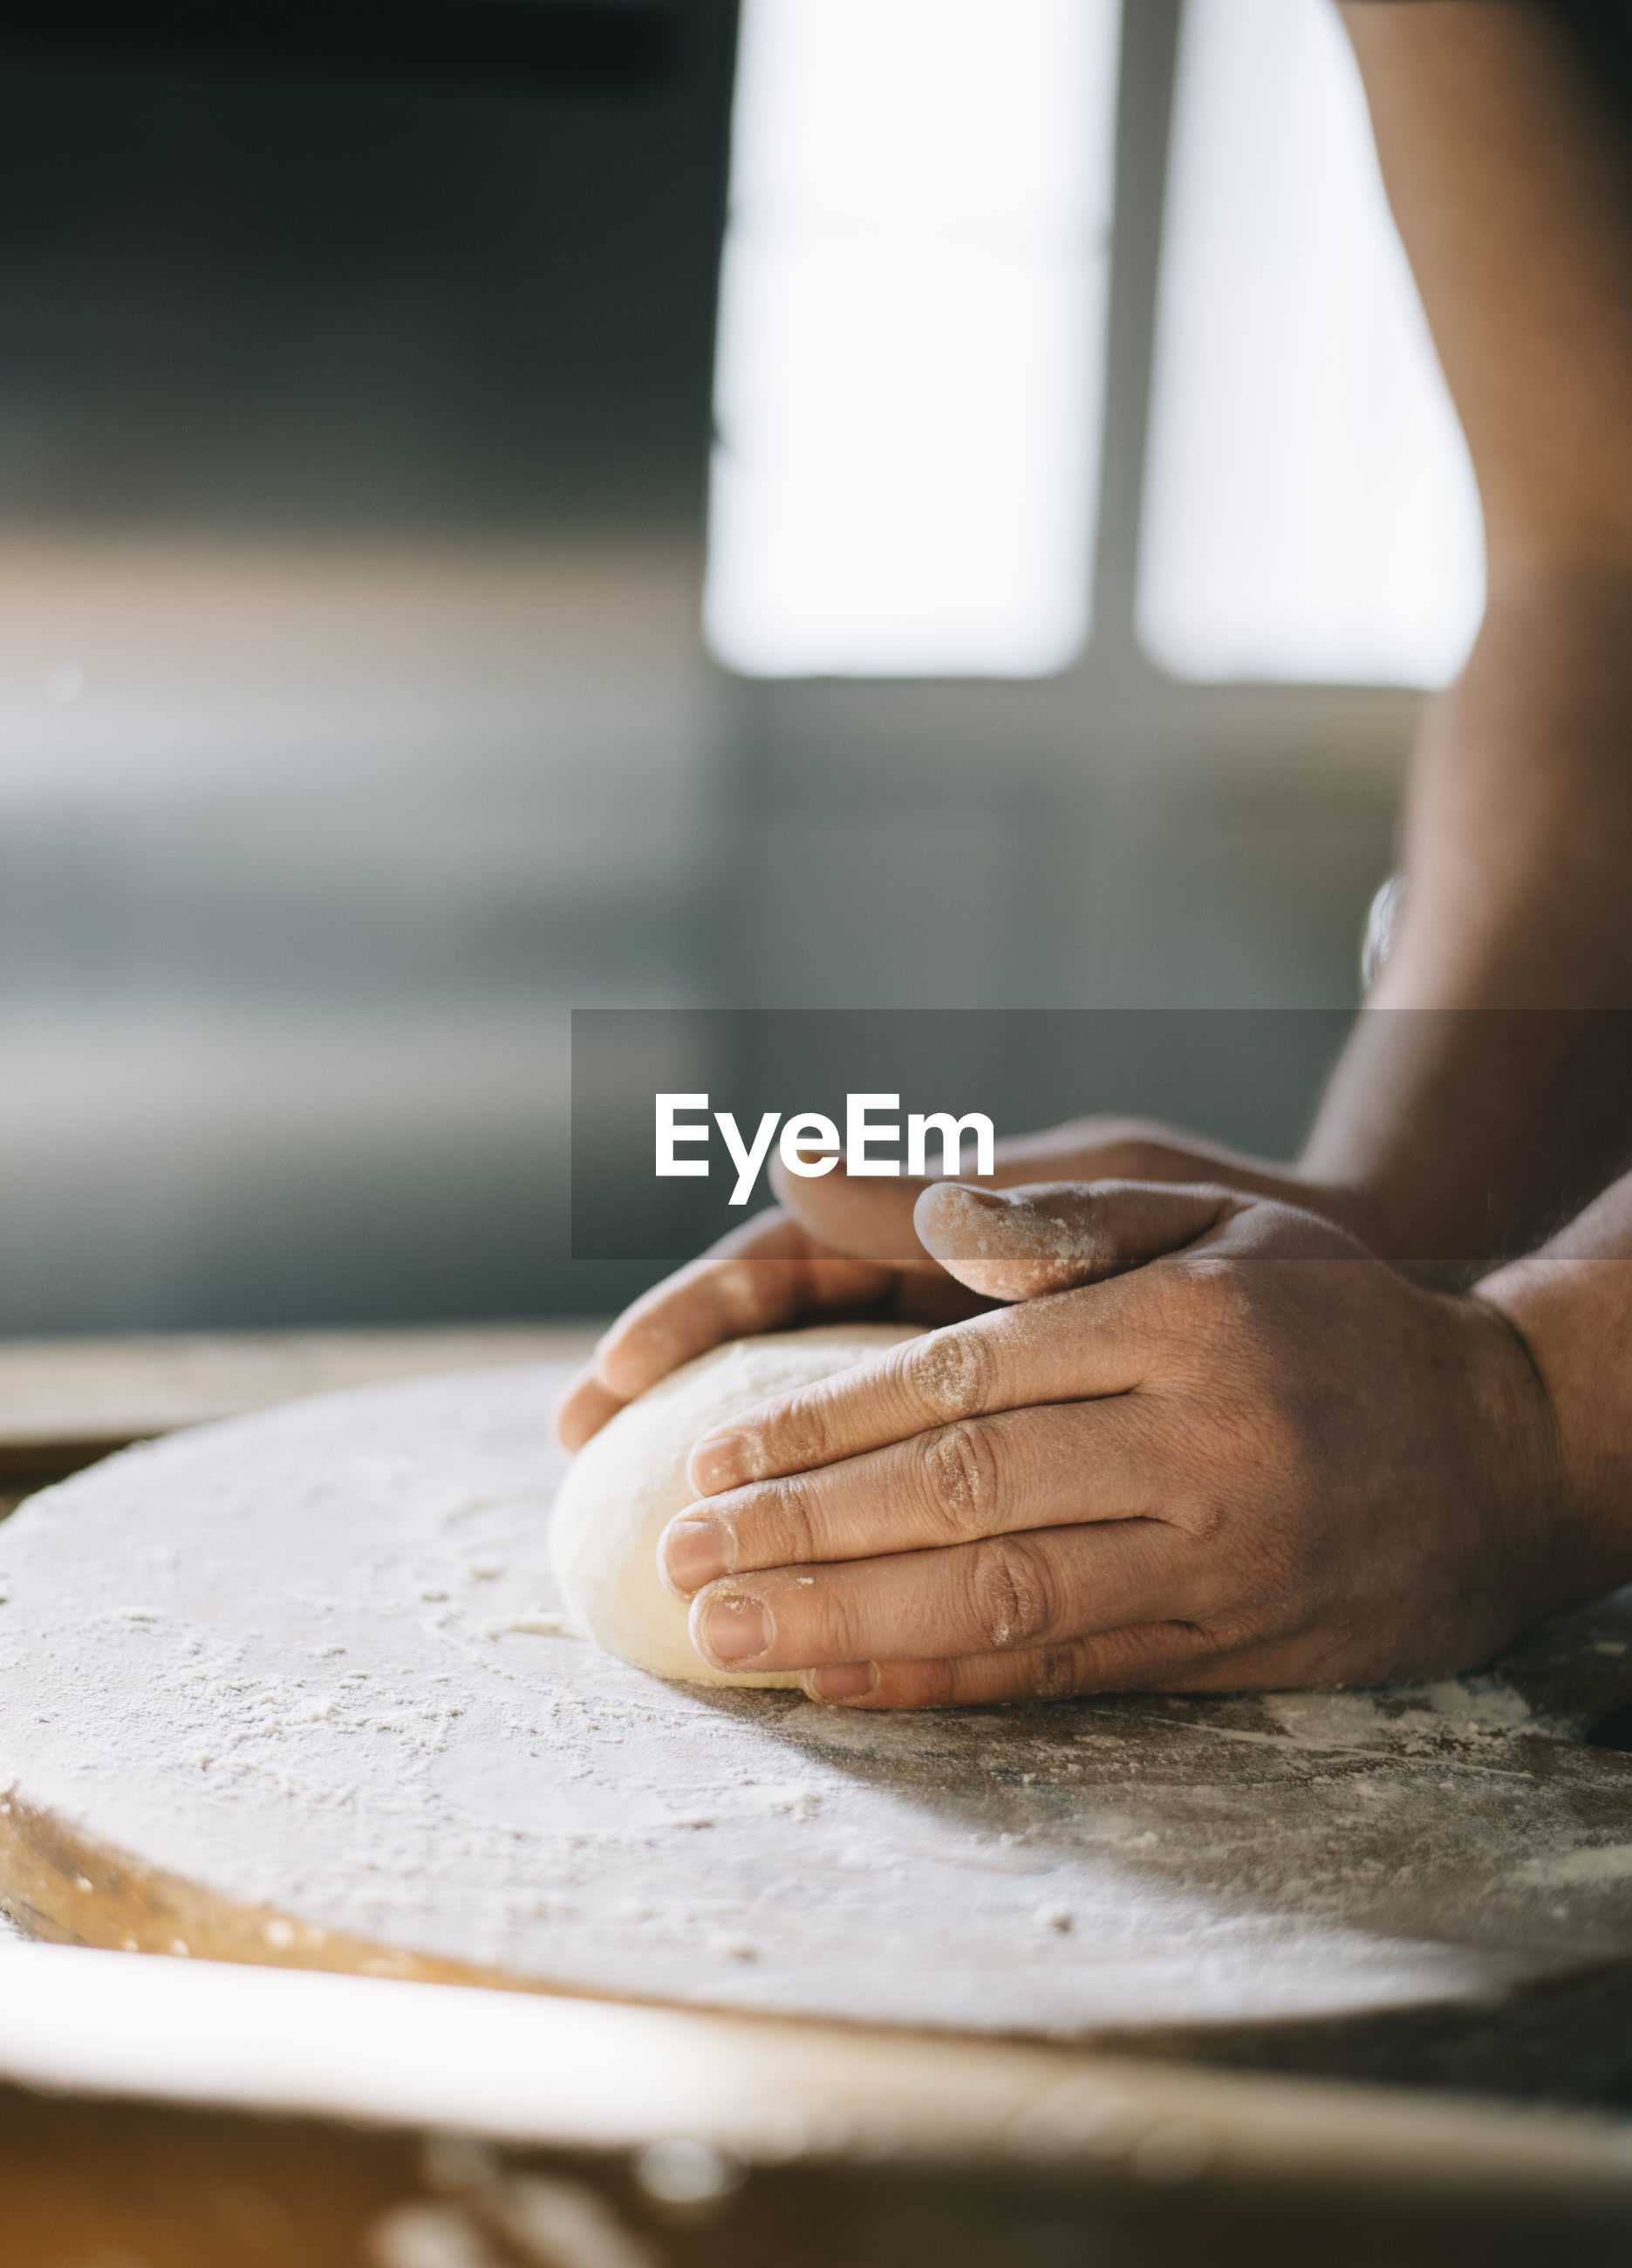 Cropped hand of person preparing food in kitchen